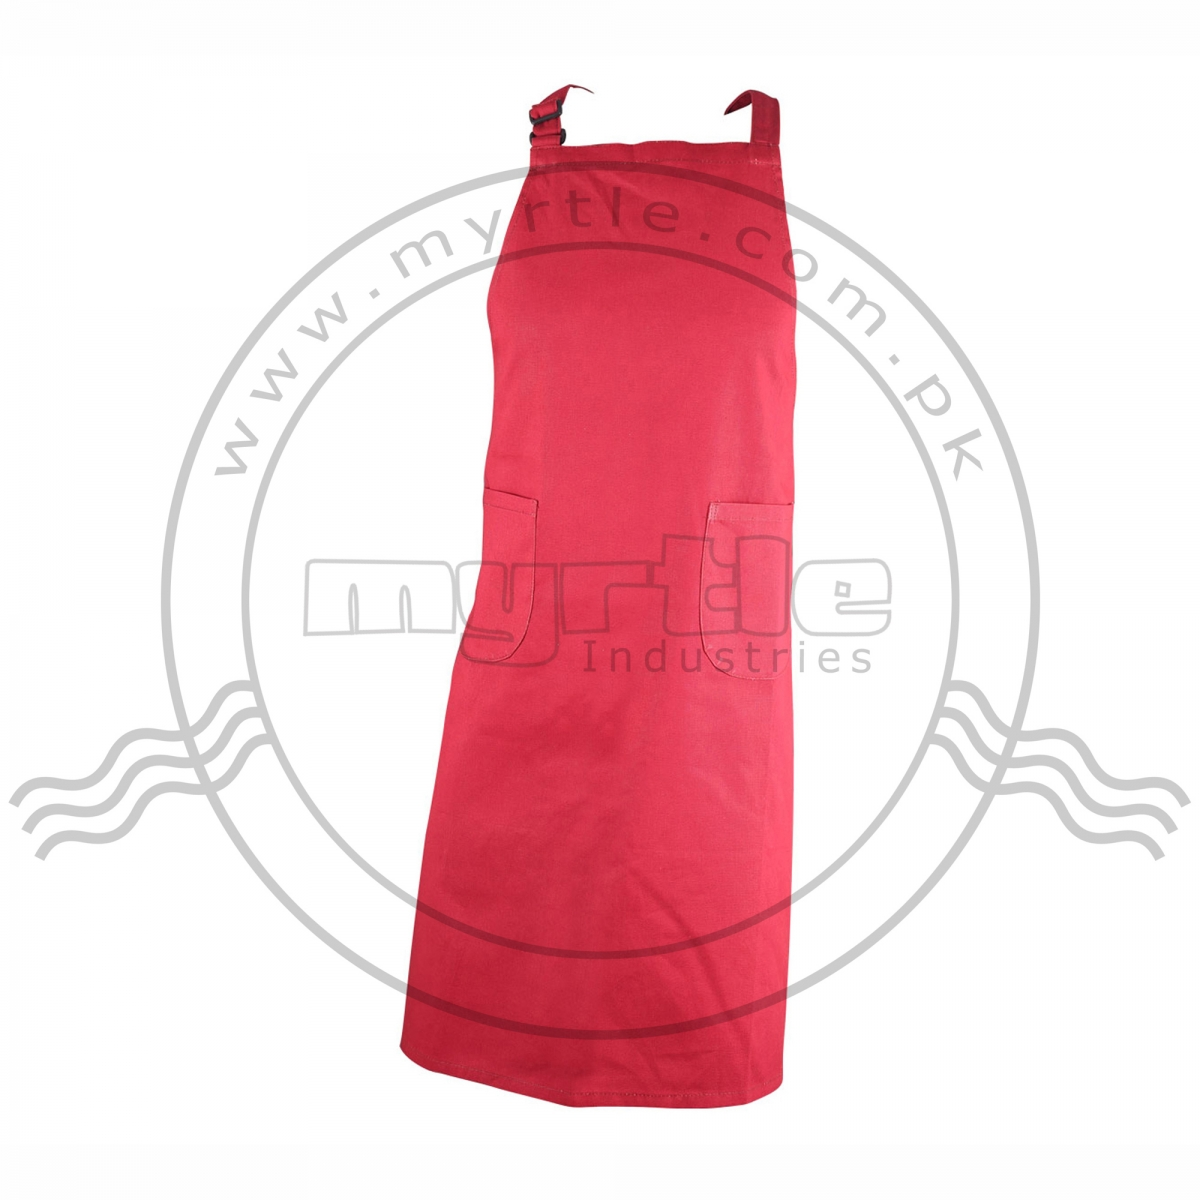 Apron With Two Pockets and Bib